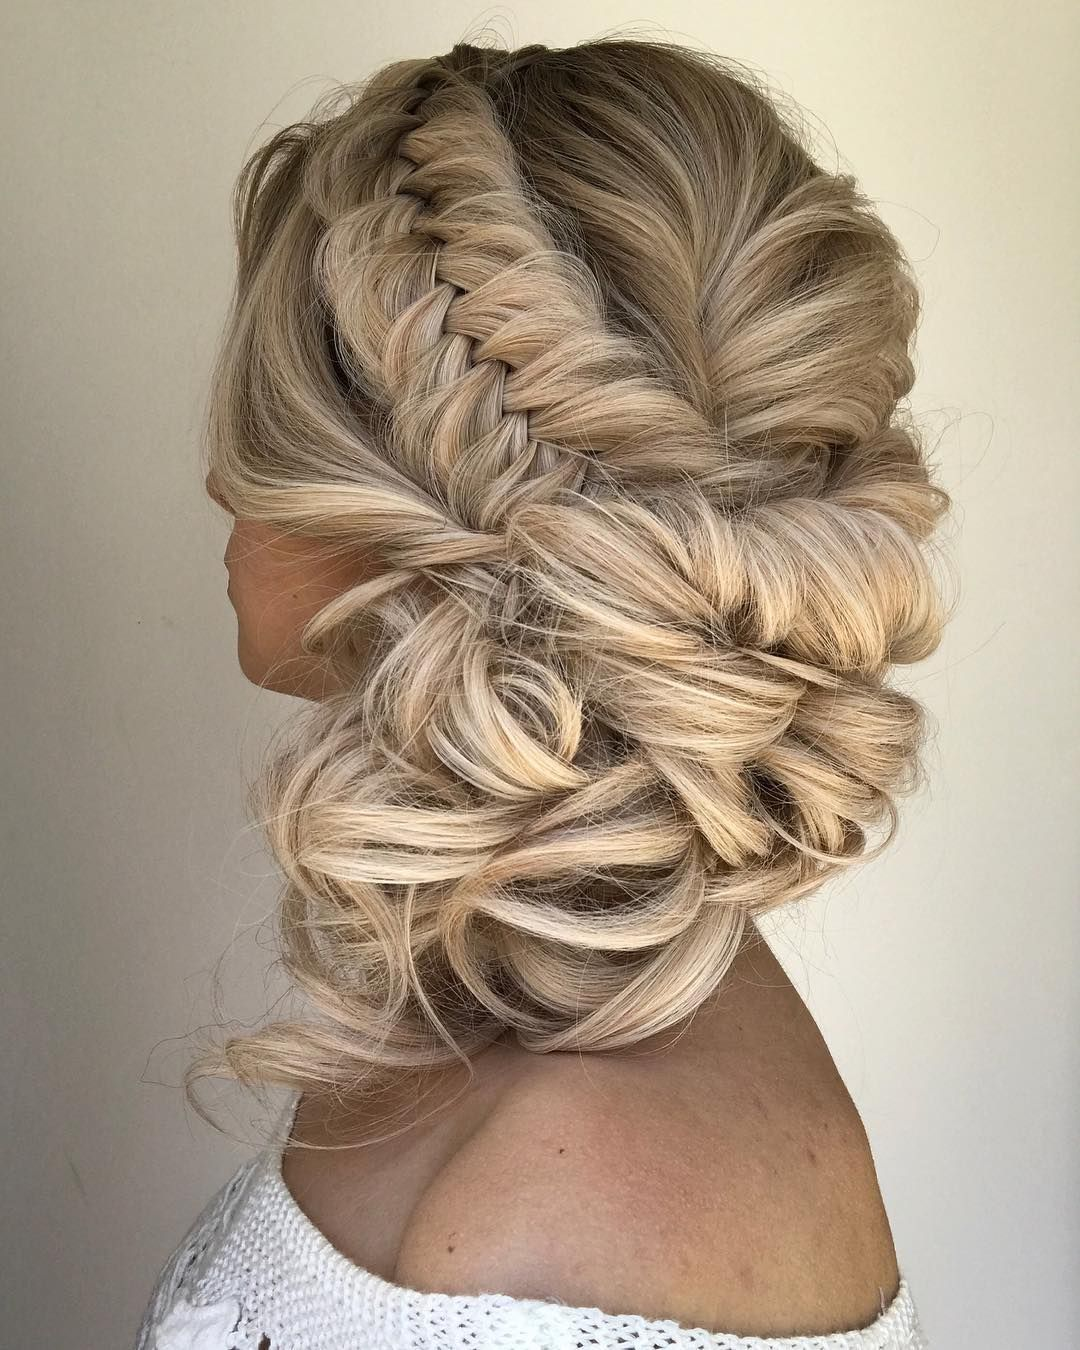 light brown ombre wig, braid hair art @alexandralee1016 from